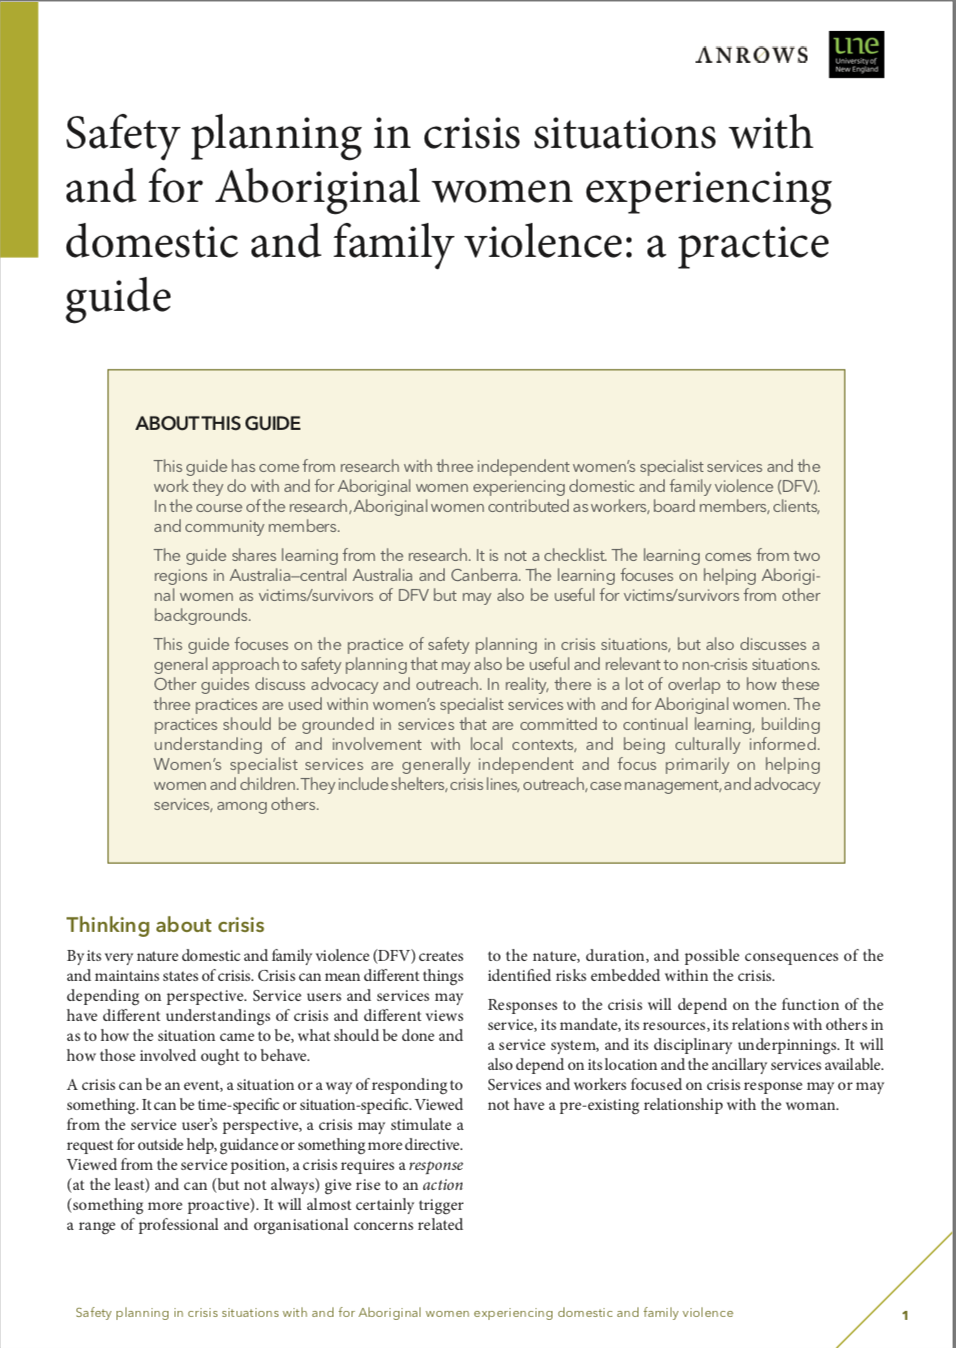 Practice guide: Safety planning in crisis situations with and for Aboriginal women experiencing domestic and family violence